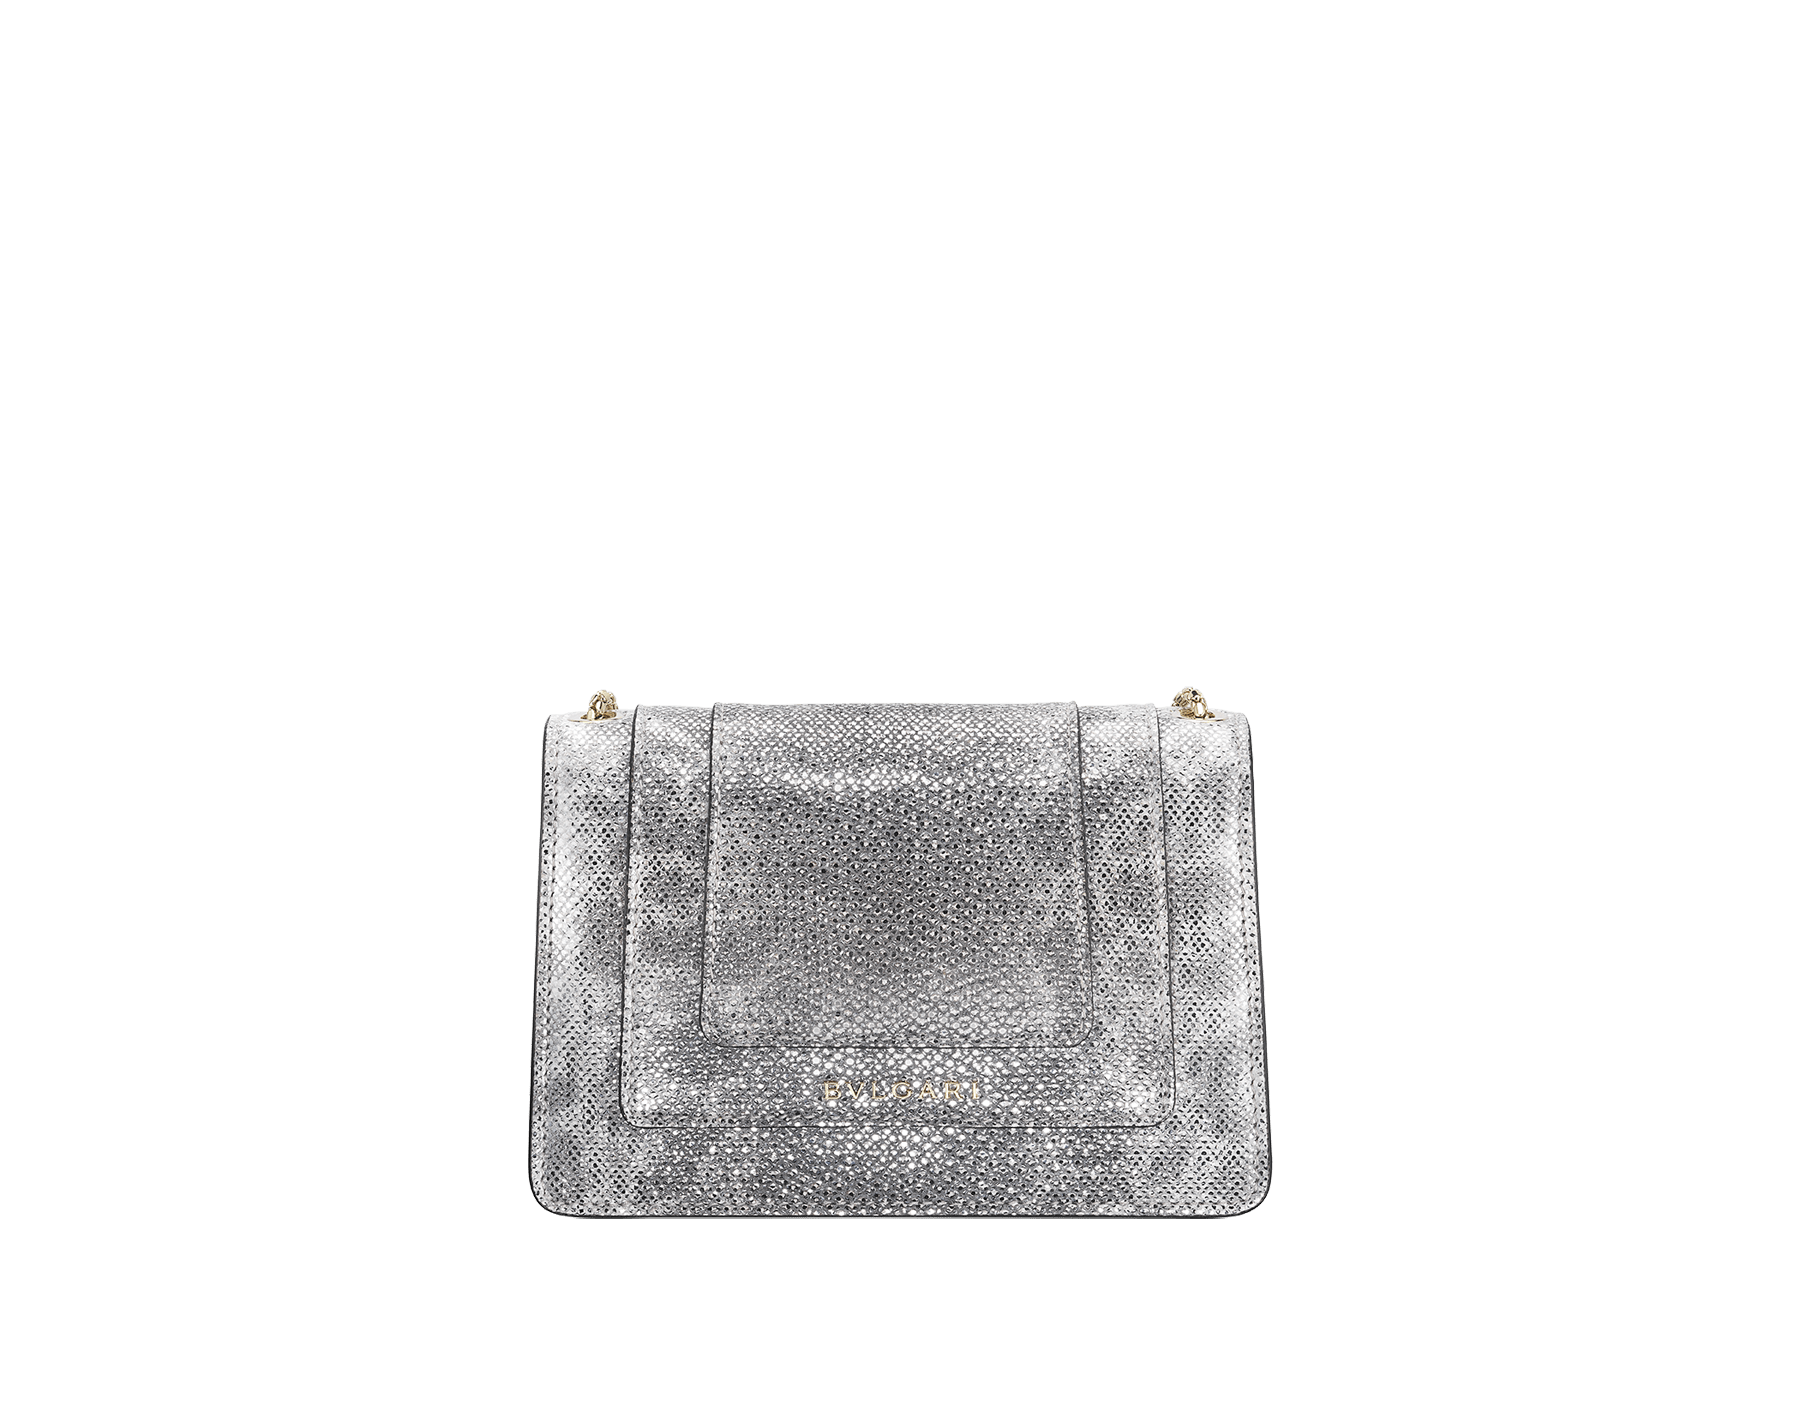 Serpenti Forever mini crossbody bag in white agate metallic karung skin. Brass light gold-plated snake head closure in black and white enamel with black onyx eyes. 986-MK image 3